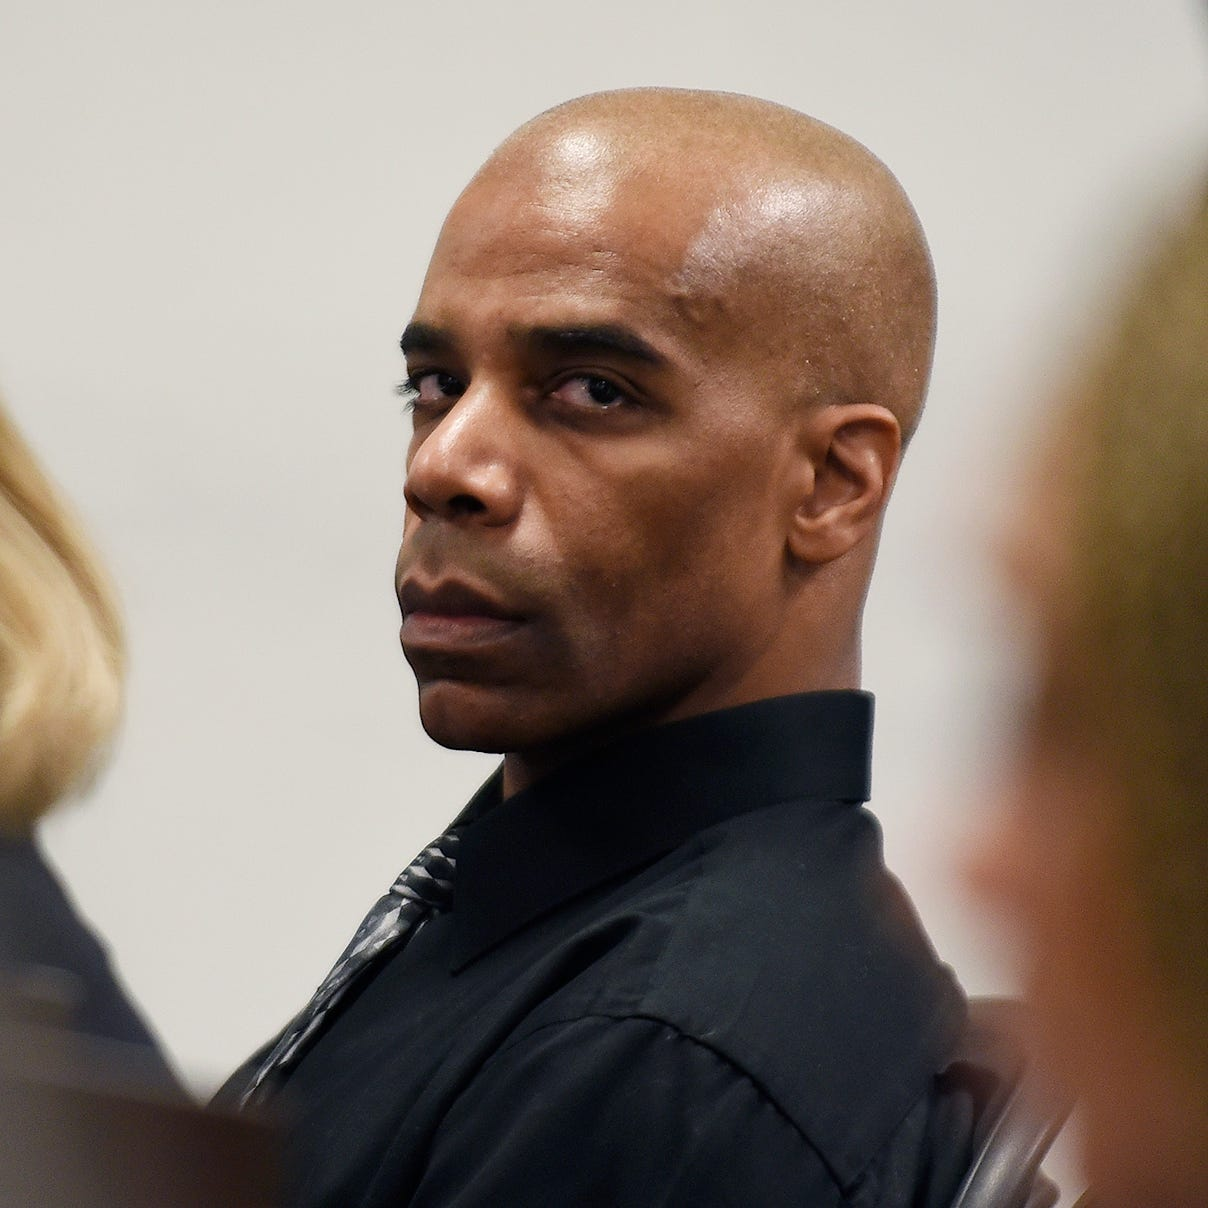 Detroit cop convicted of assaulting woman in hospital